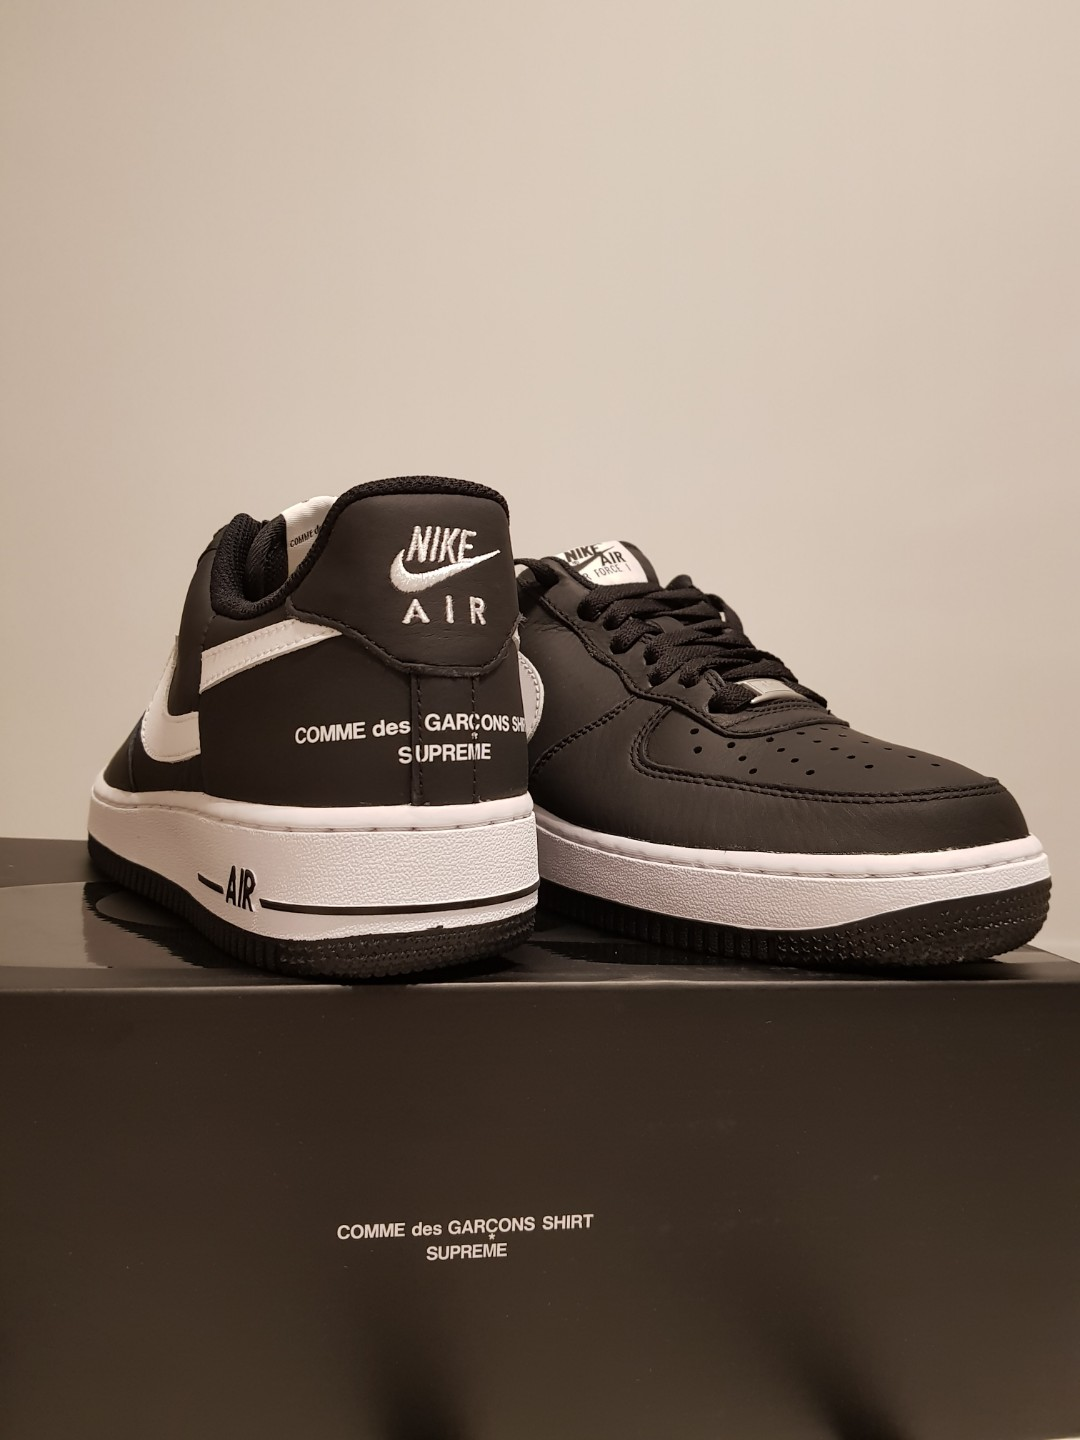 quality design 74637 22093 US7.5 Supreme x CDG Nike Air Force 1 Low